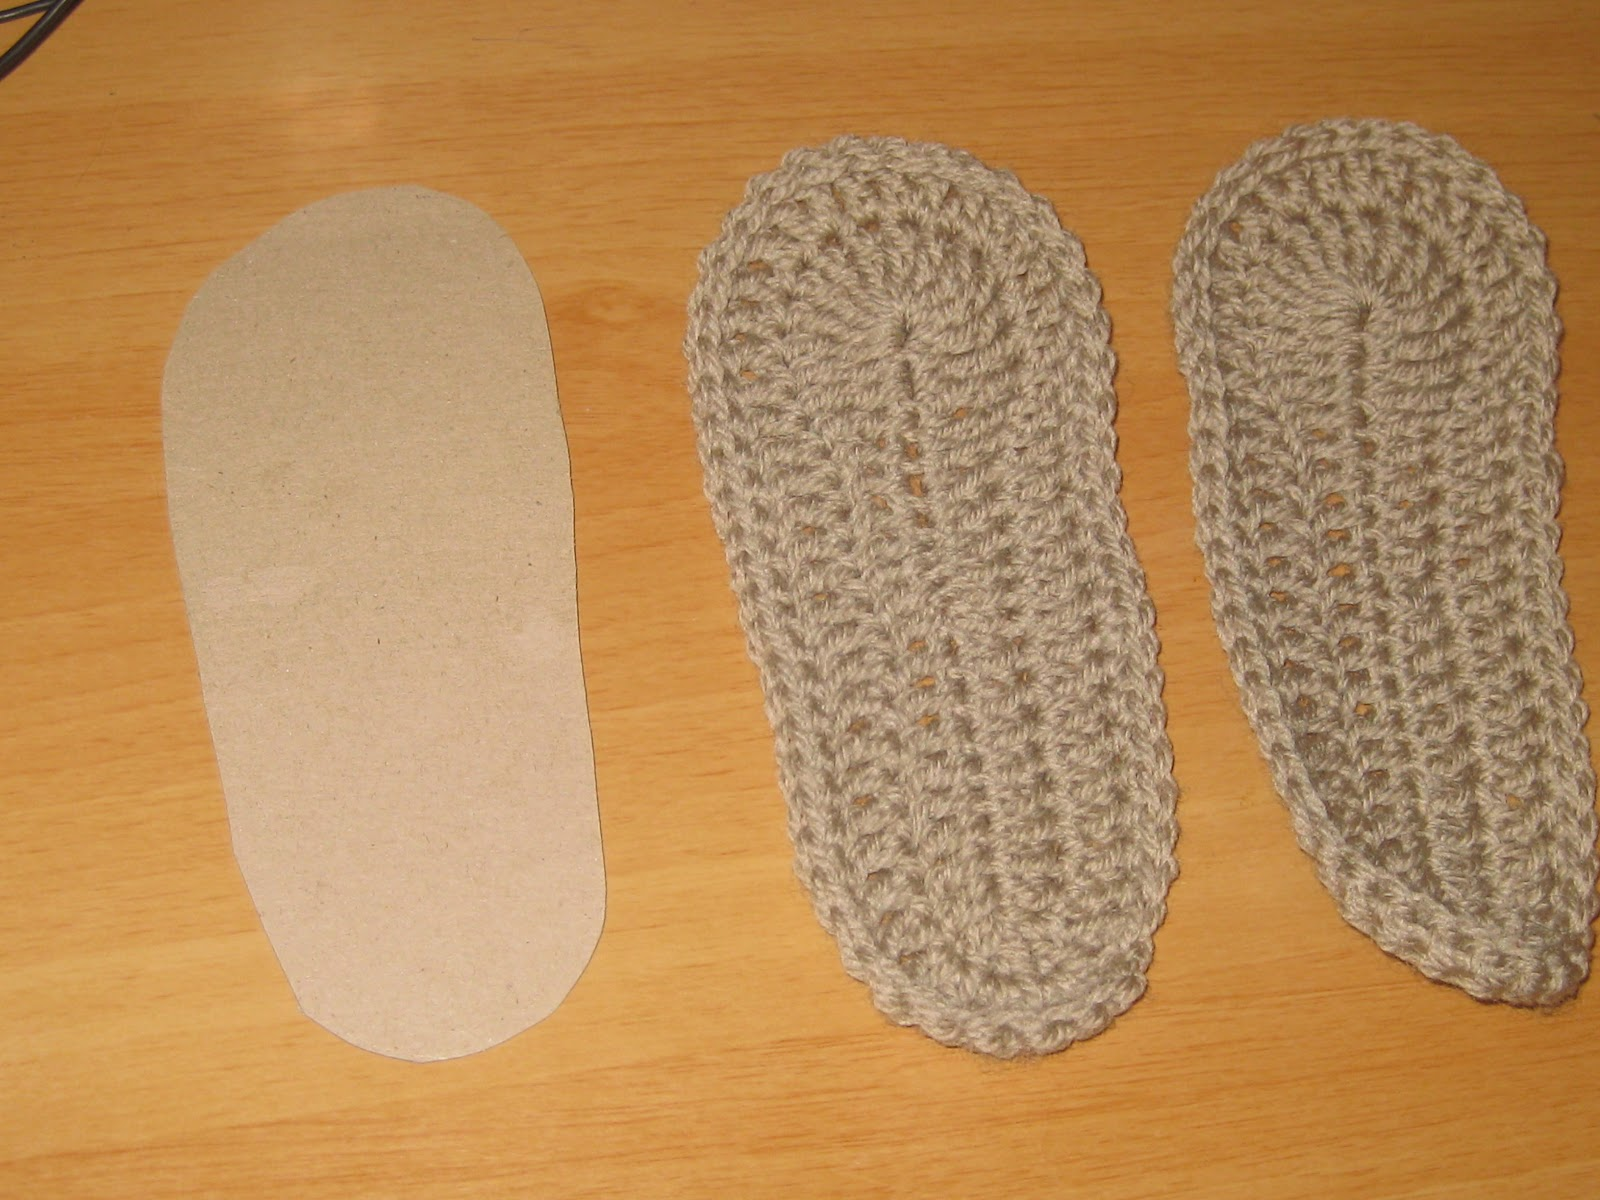 Free Printable Crochet Patterns For Baby Sandals : Knot Your Nanas Crochet: Crochet Sandals